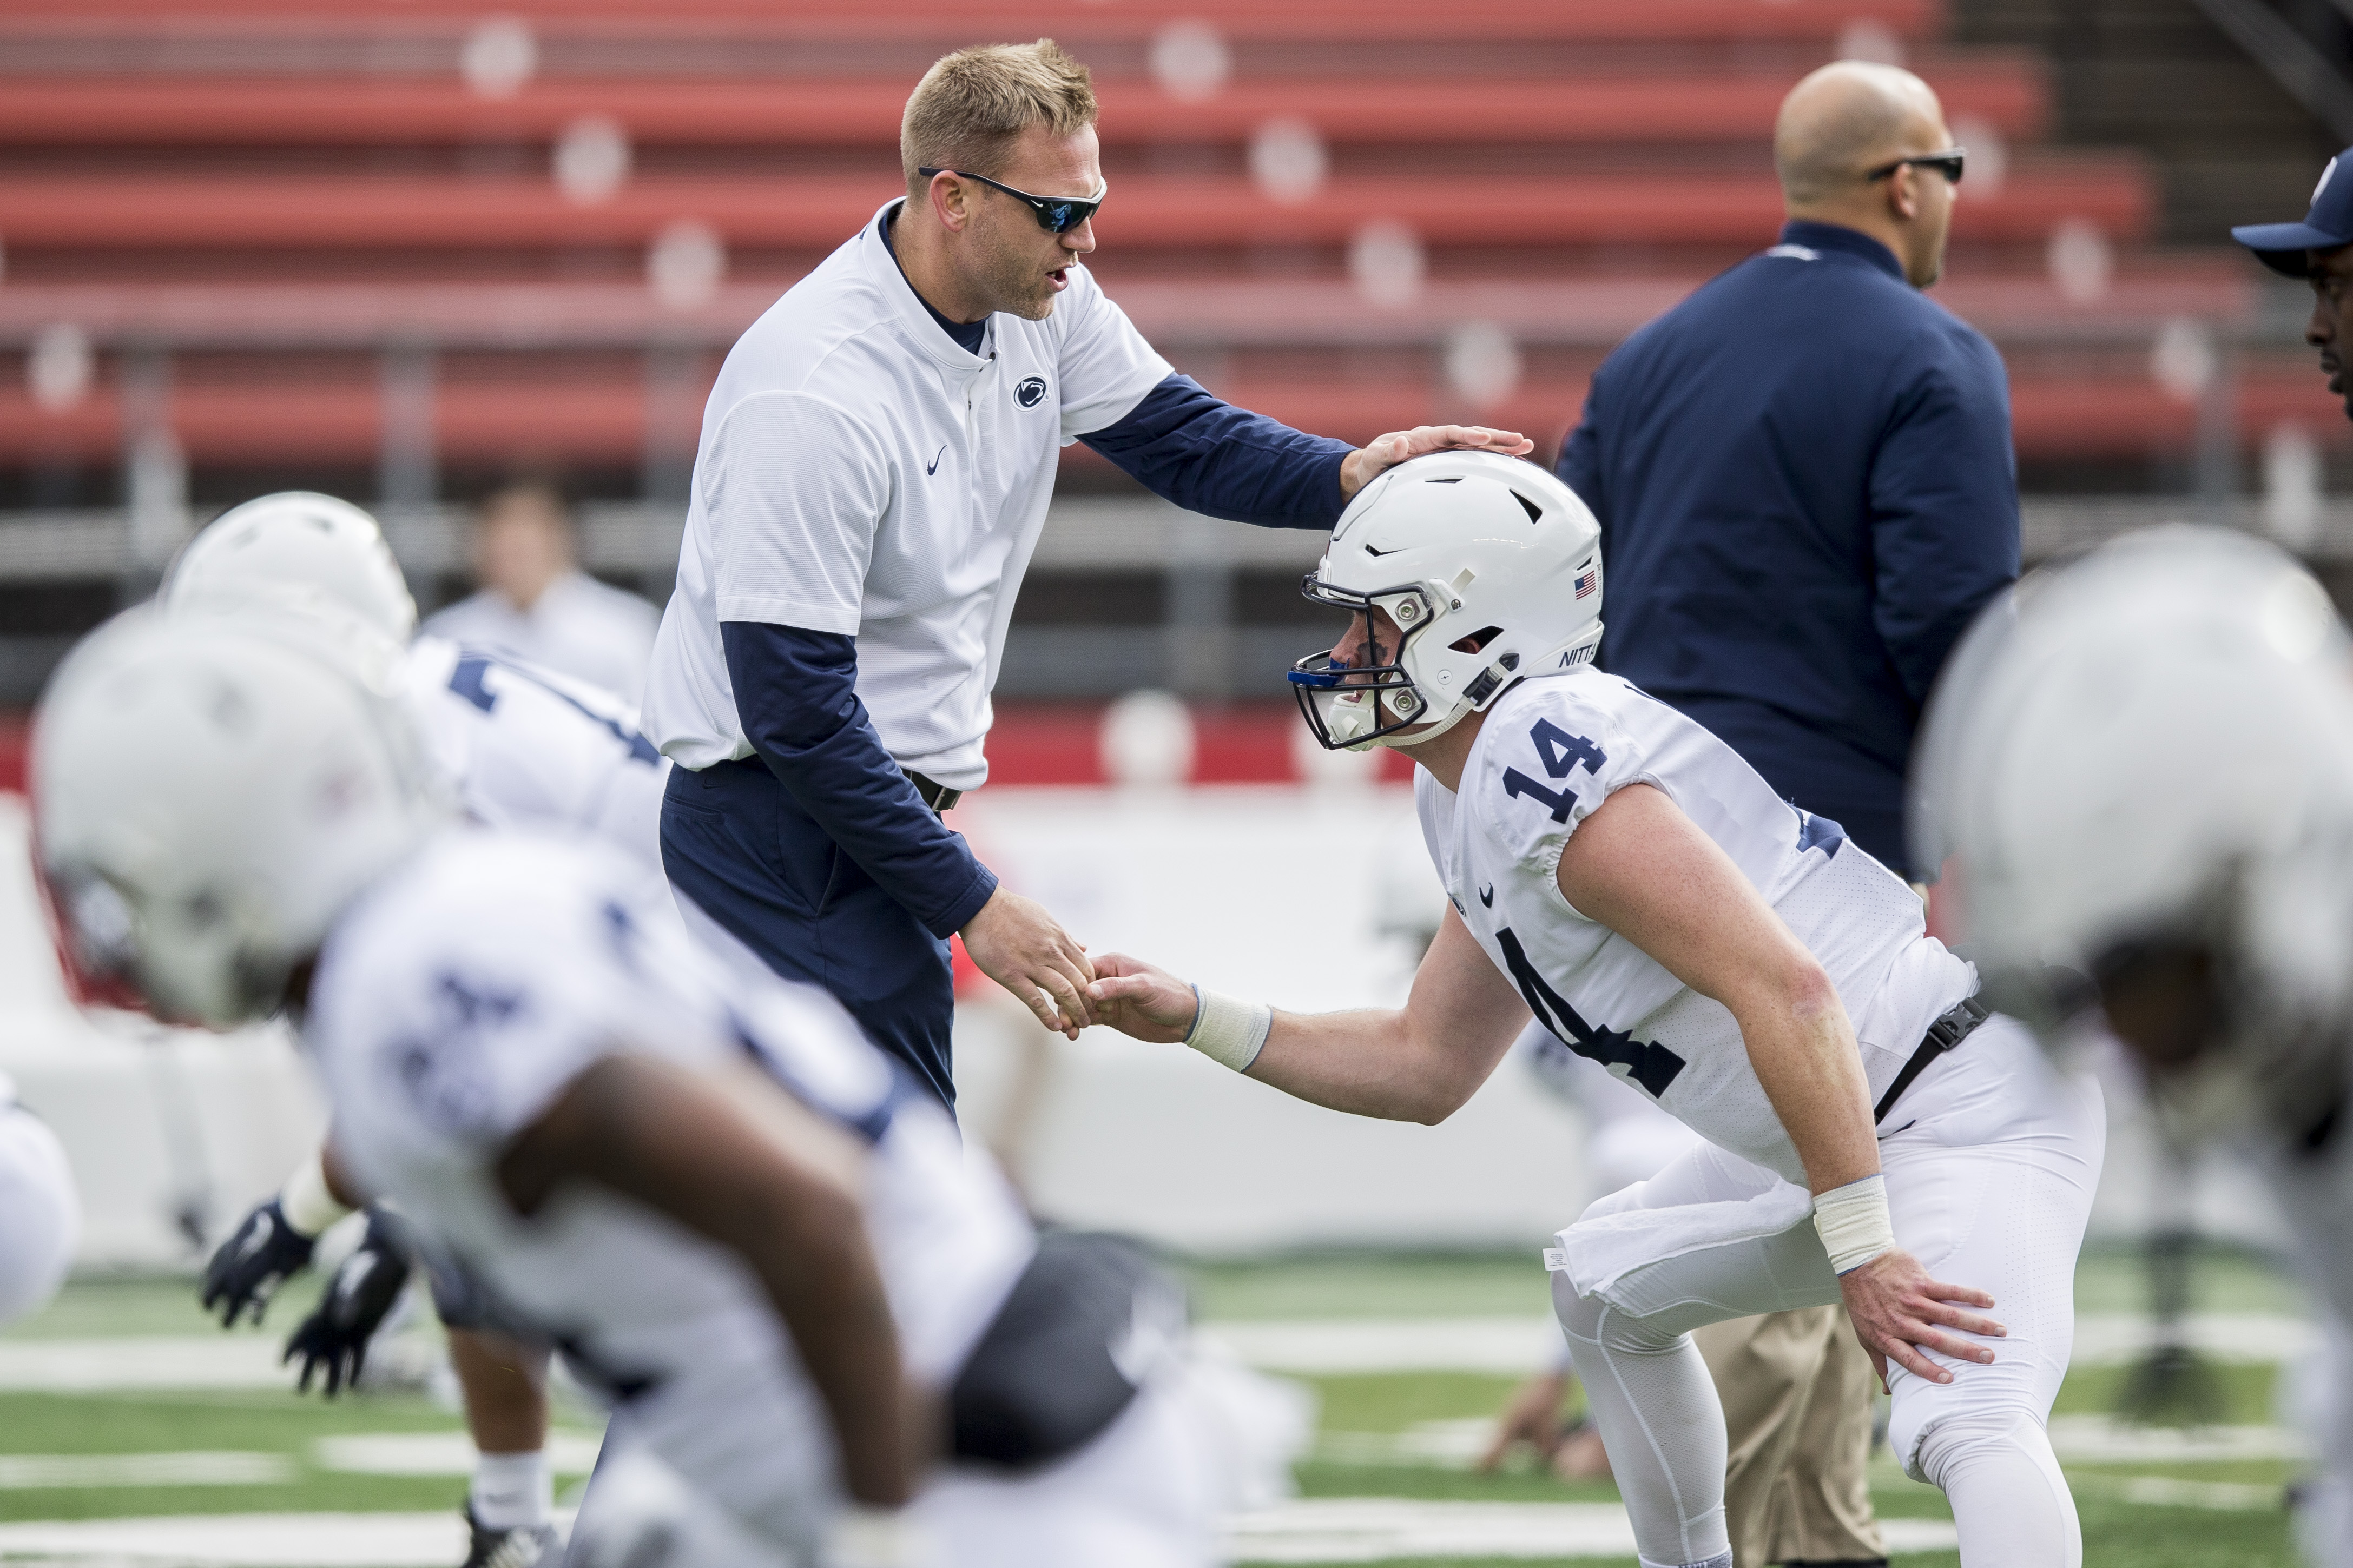 Penn State's crazy quarterback makeover: Tommy Stevens out, Sean Clifford in, and Will Levis on-deck